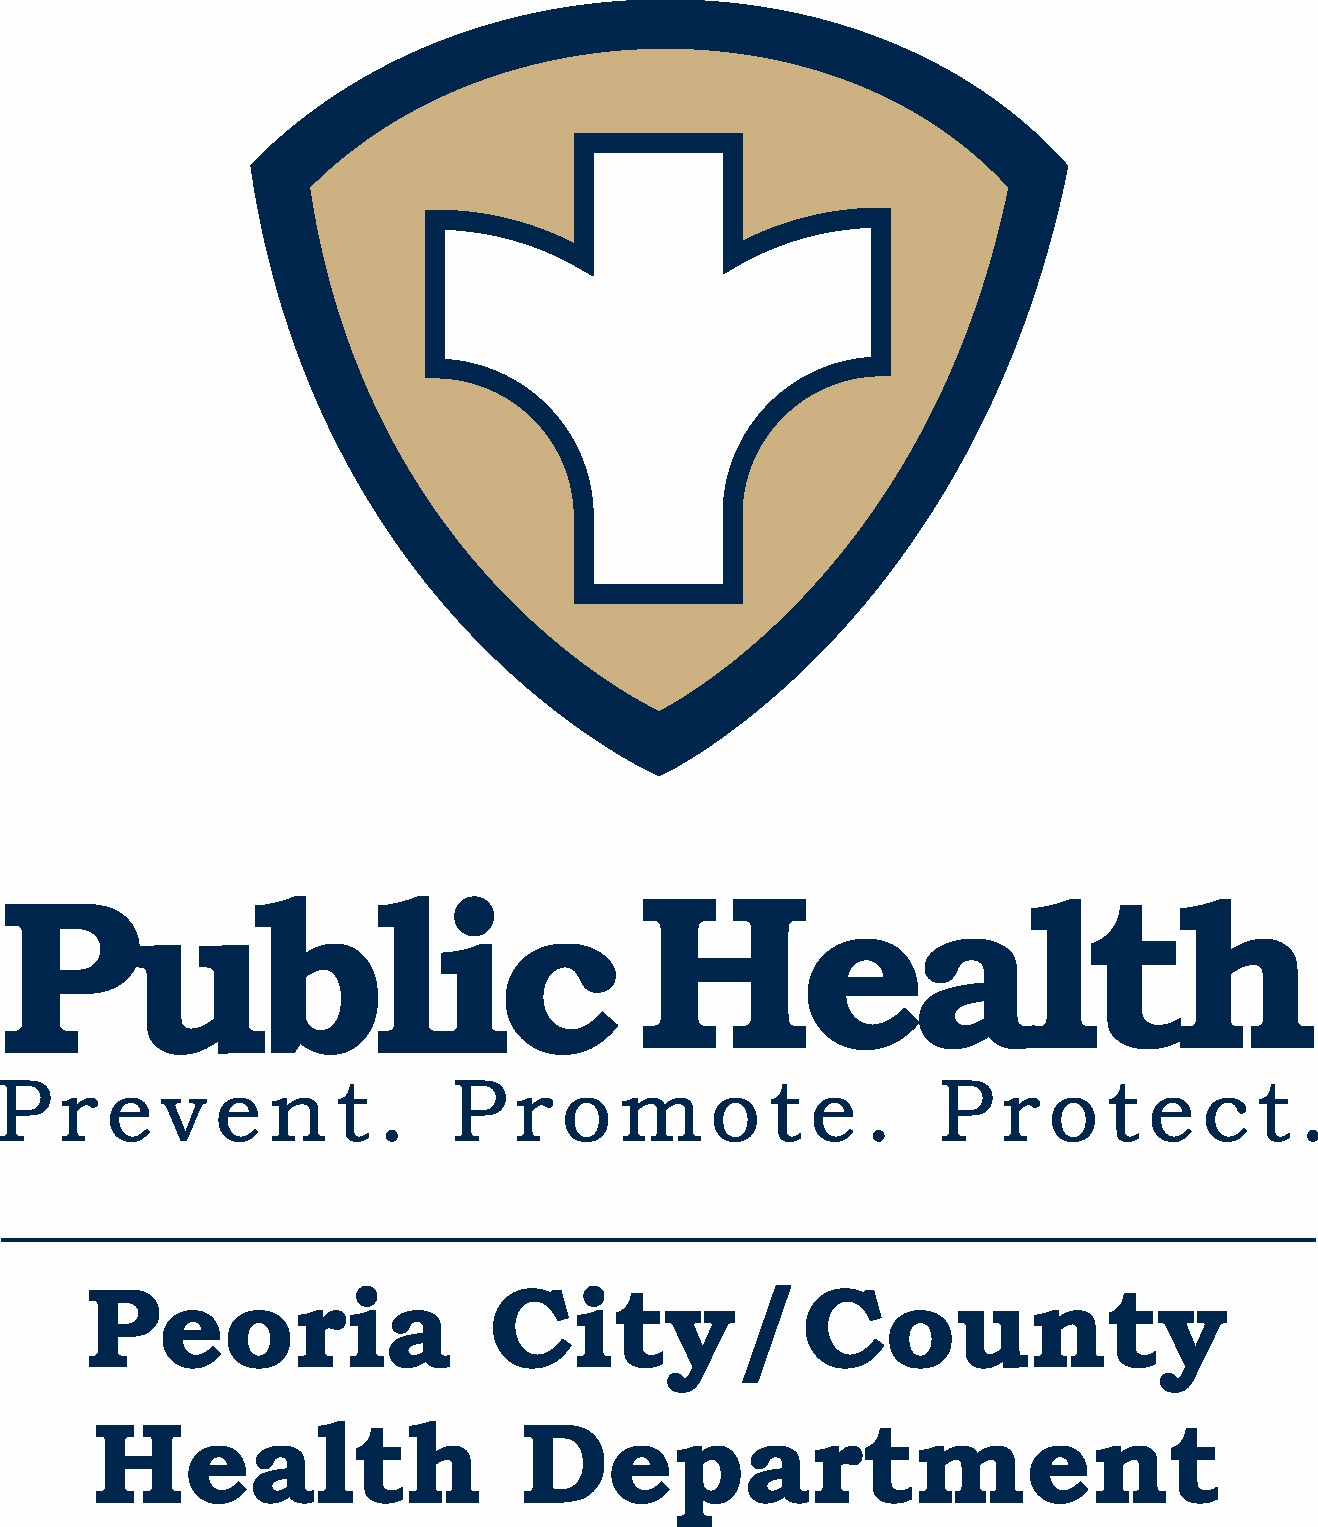 the illinois department of public health The illinois department of public health (idph) collects and evaluates thousands of health statistics to measure progress toward state and national health objectives.